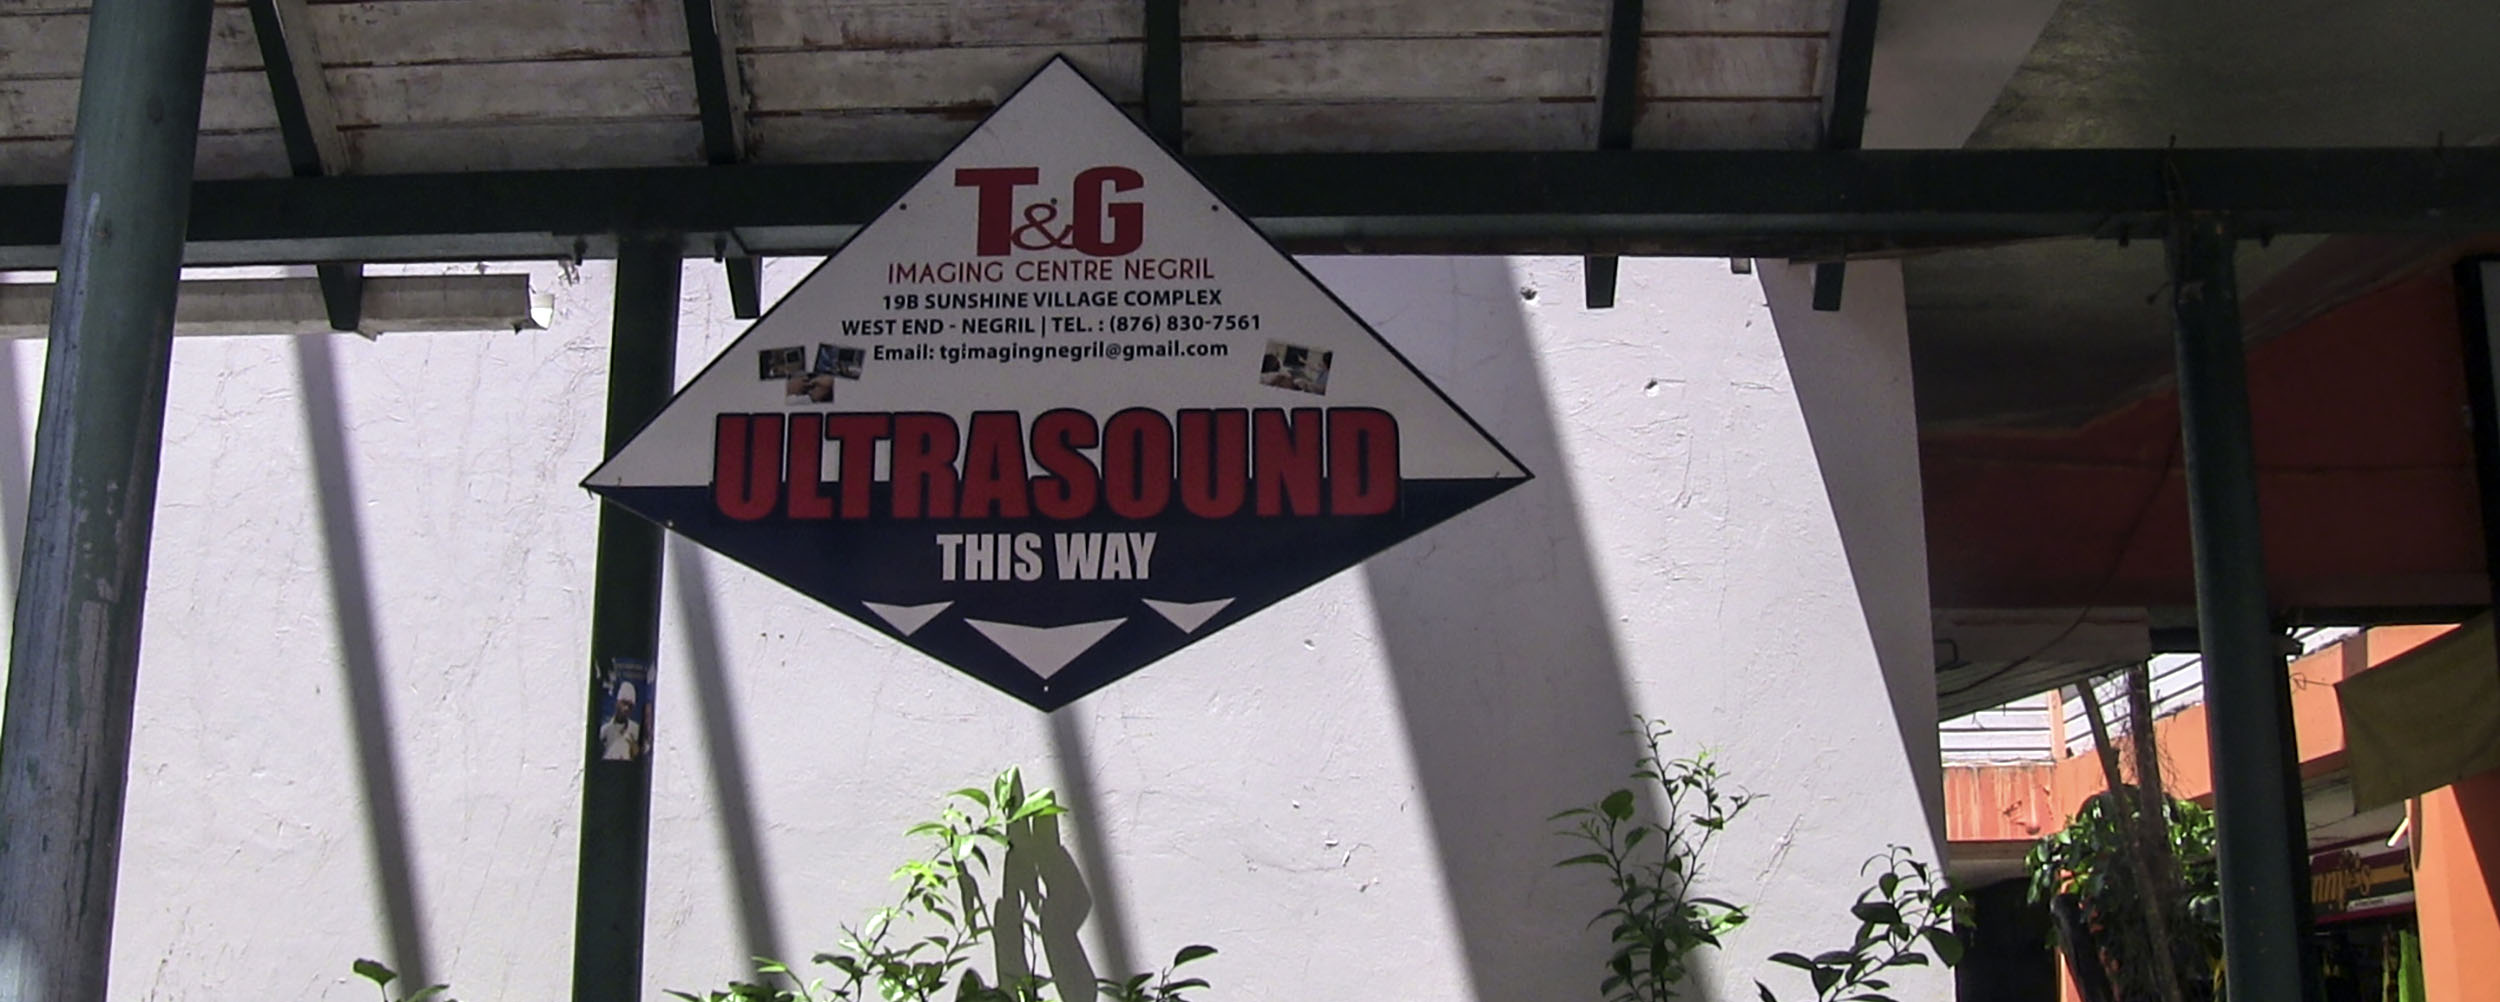 T & G Imaging Centre Negril - Sunshine Village Complex - West End Road - Negril Jamaica